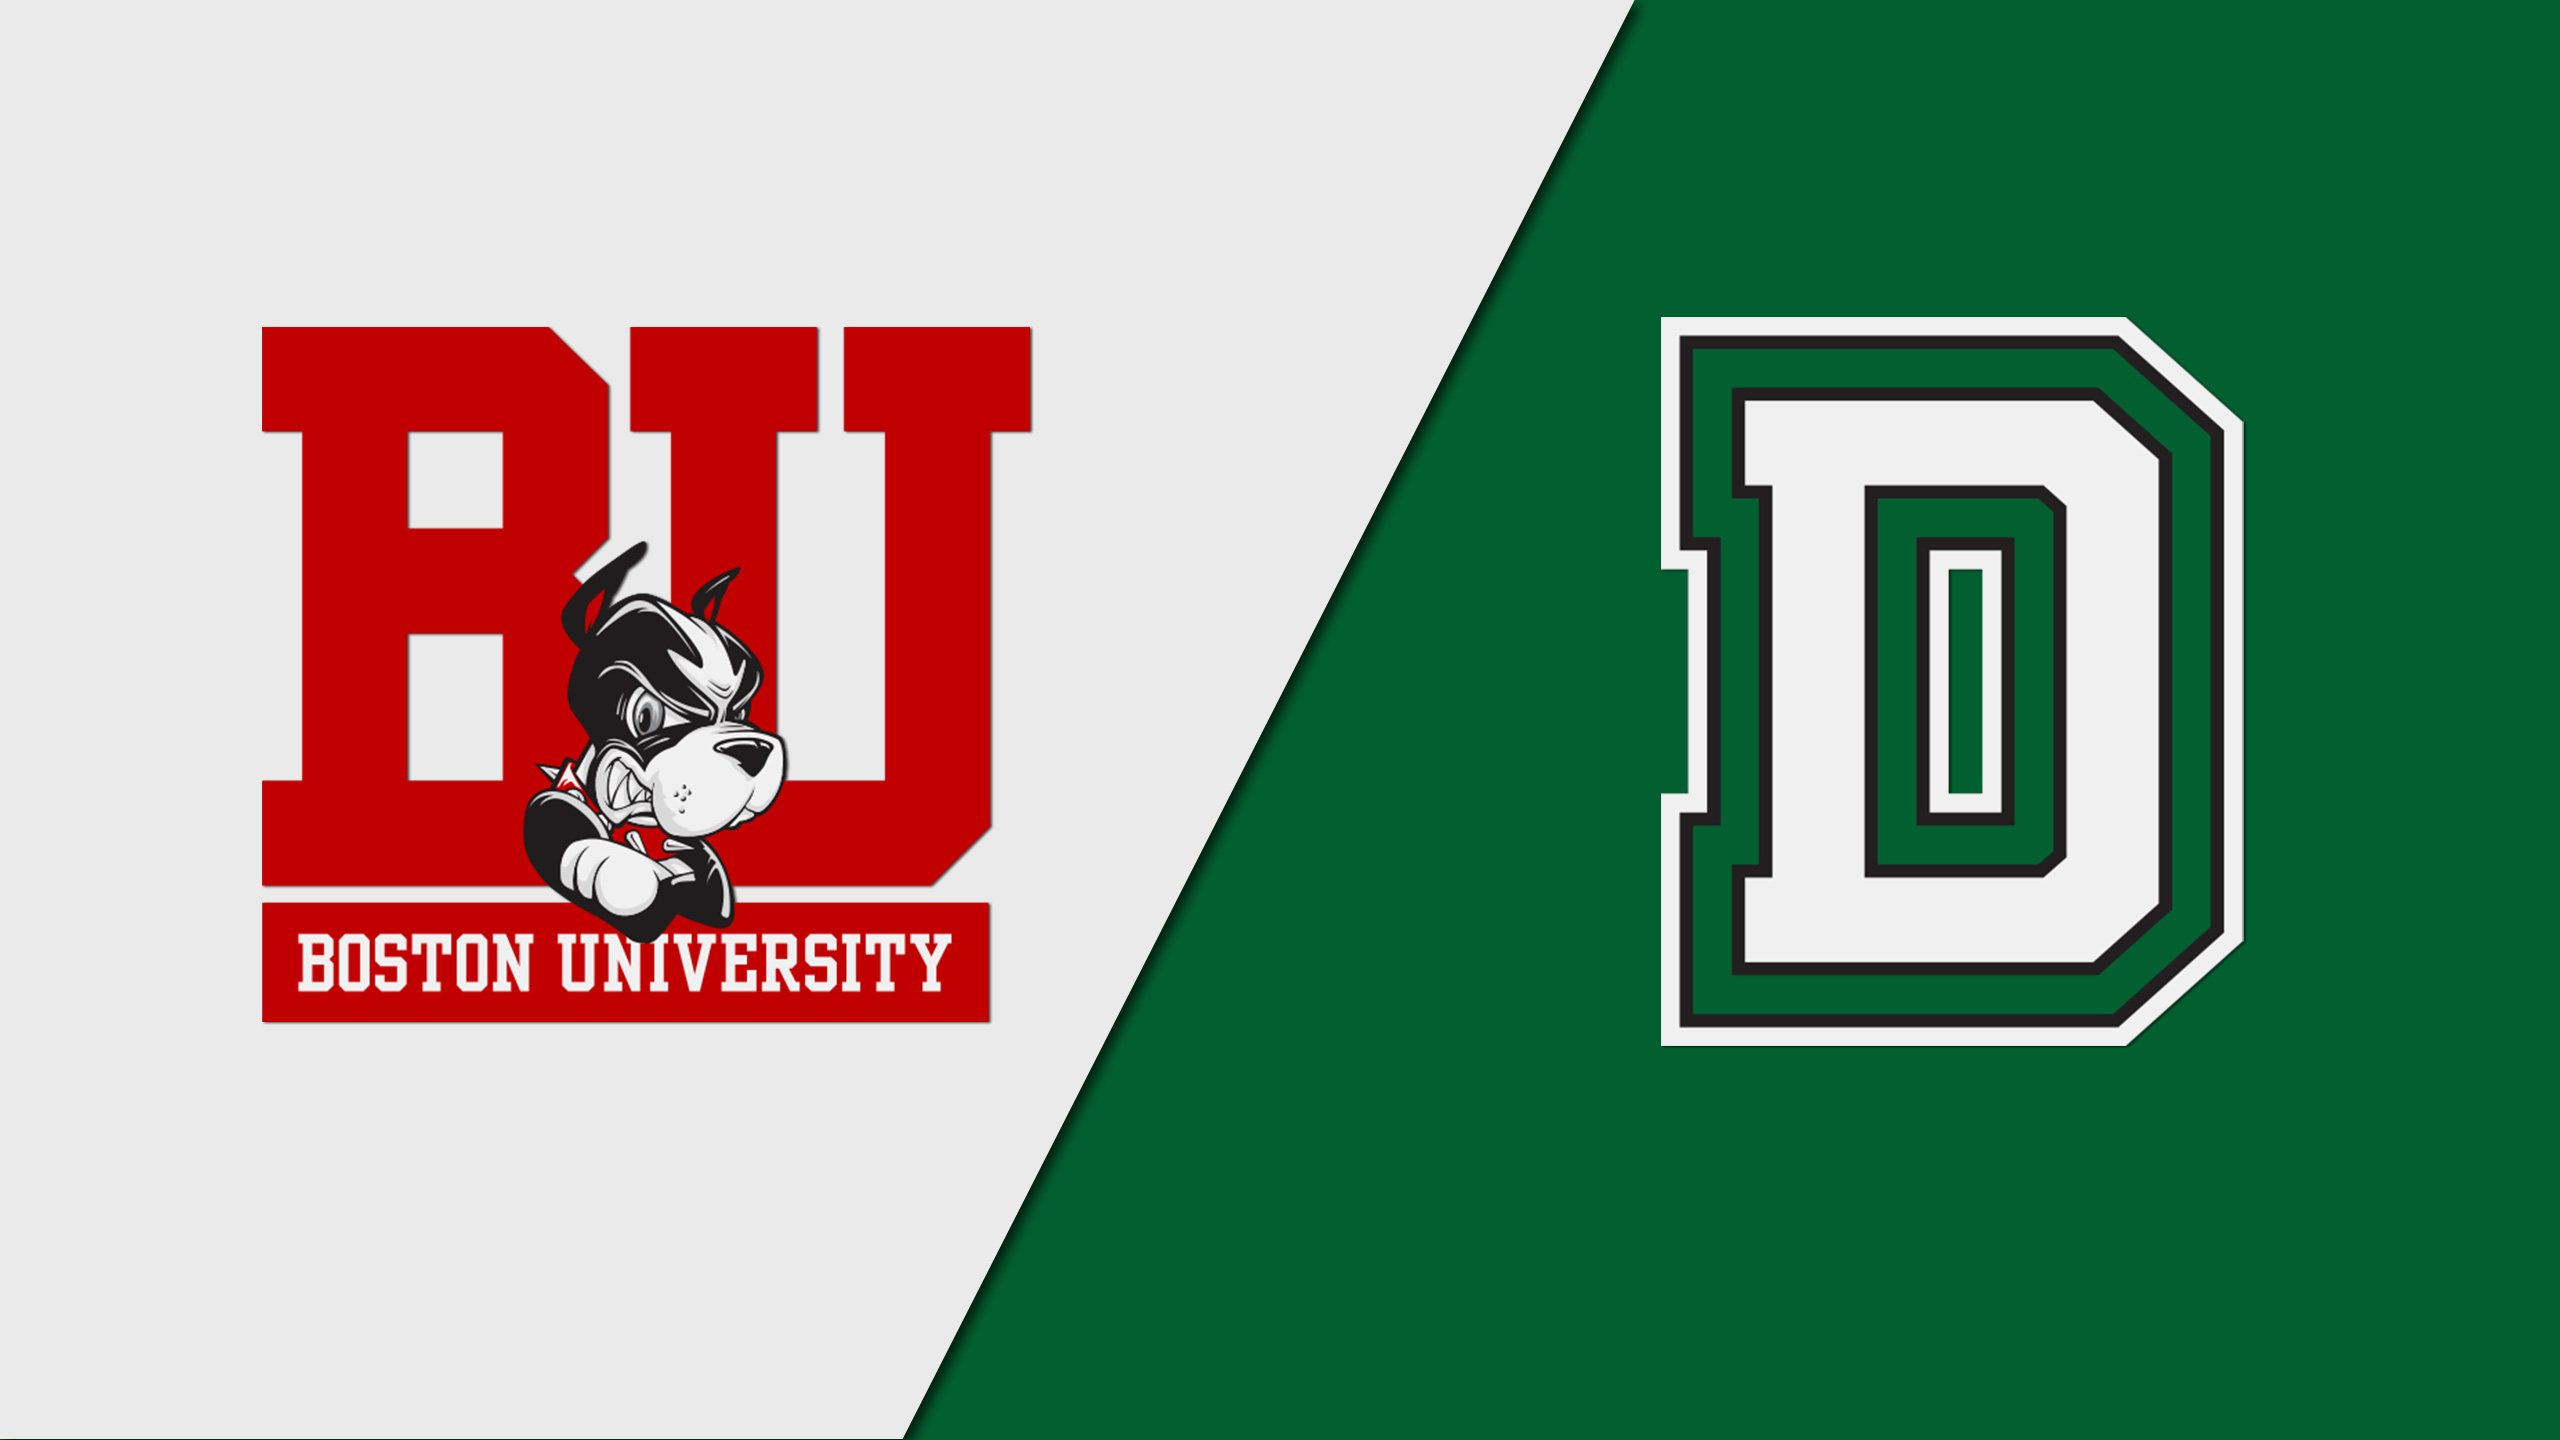 Boston University vs. Dartmouth (Court 6)